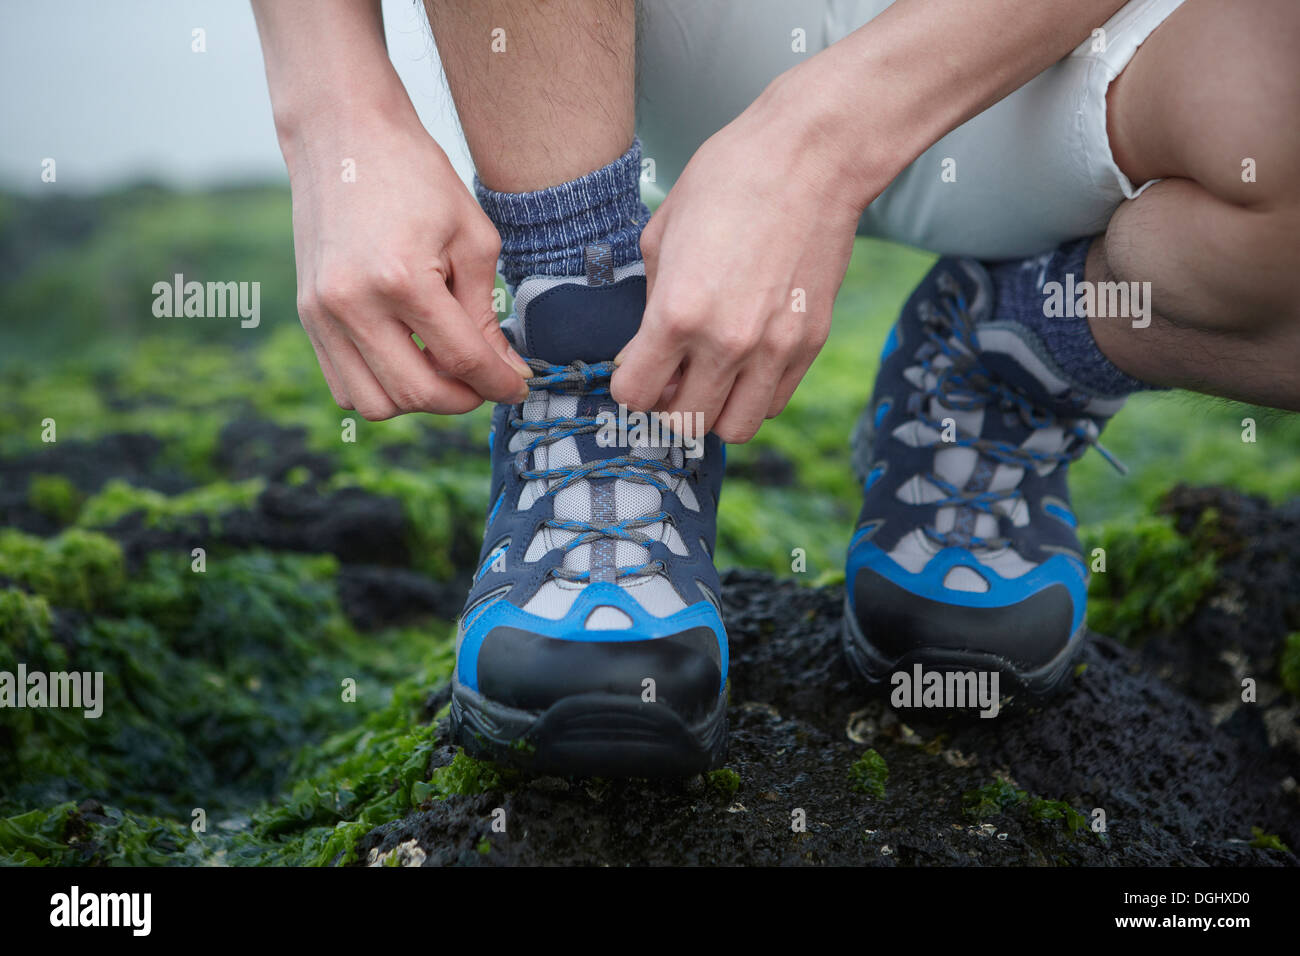 a man tying his shoe laces - Stock Image